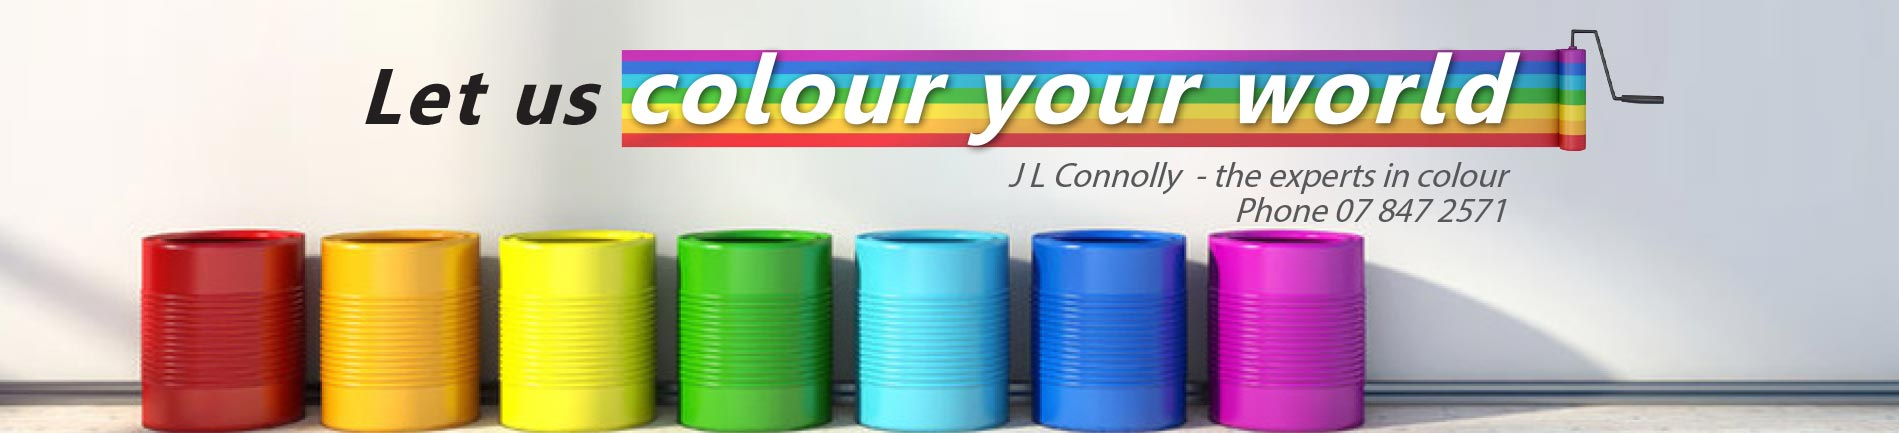 colourworld-website-Nov15